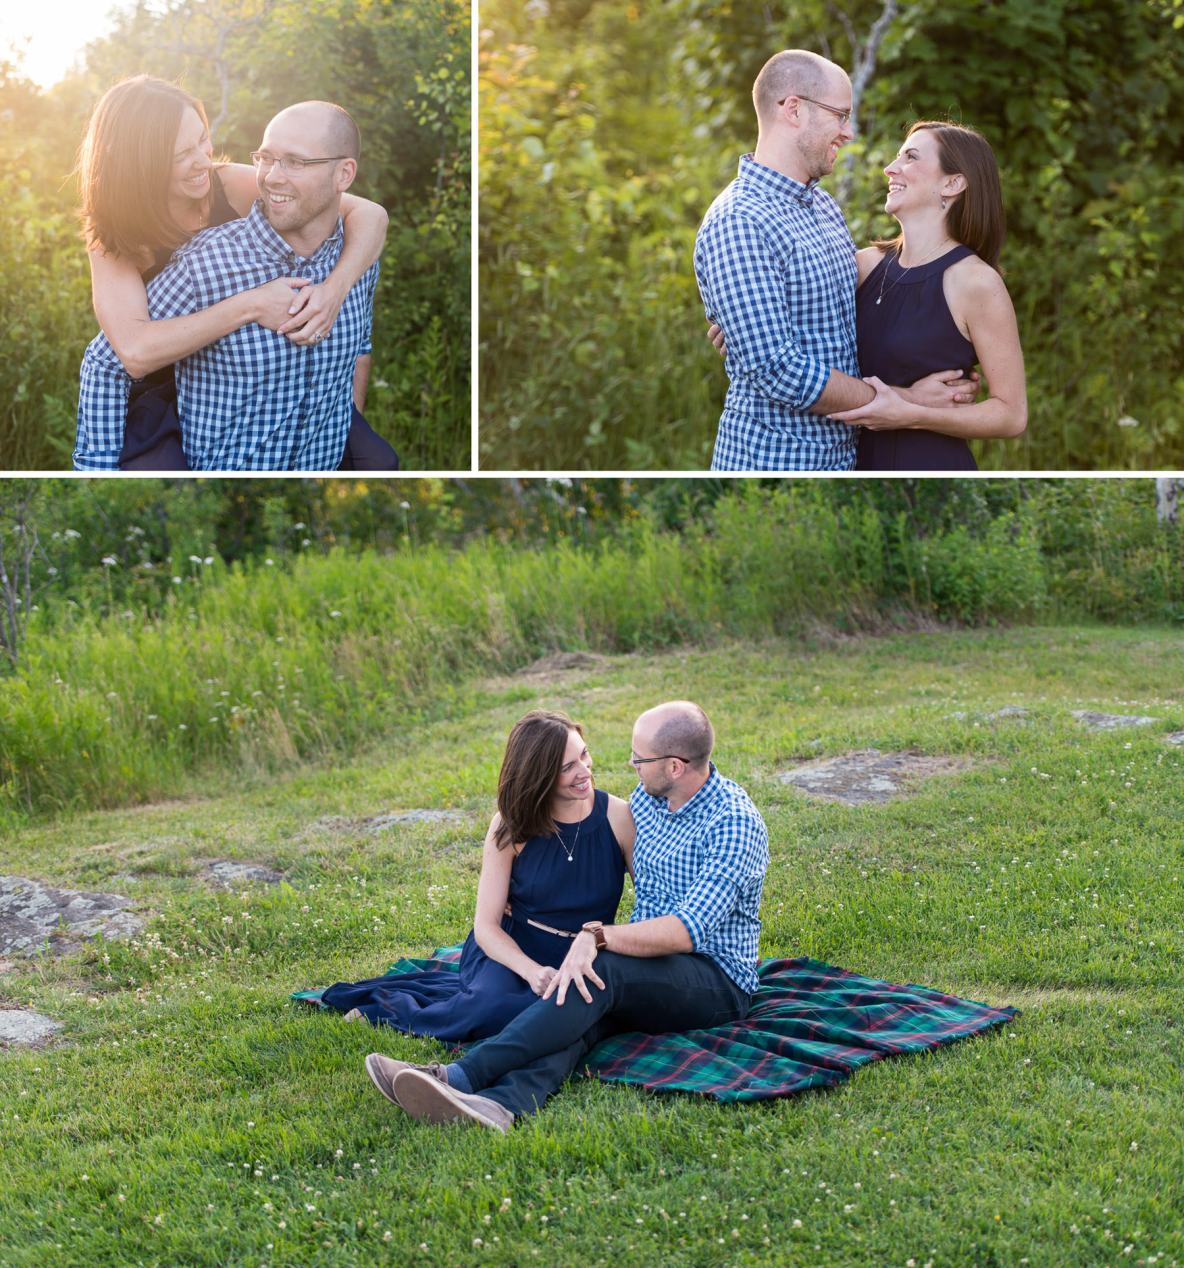 Engagement photos at Enger Tower in Duluth, MN.